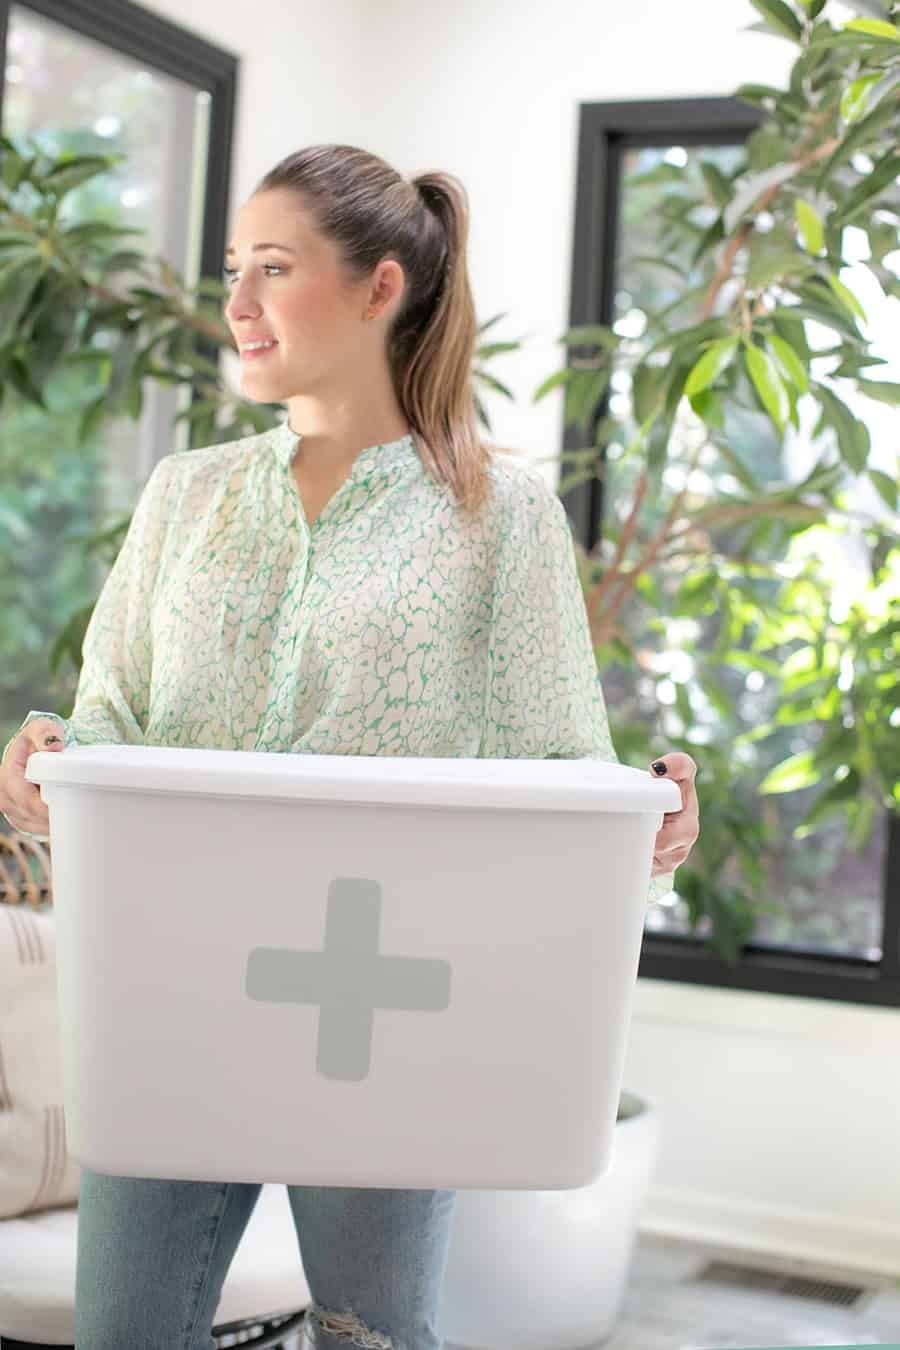 Eden Passante holding a bucket with a blue cross on it.